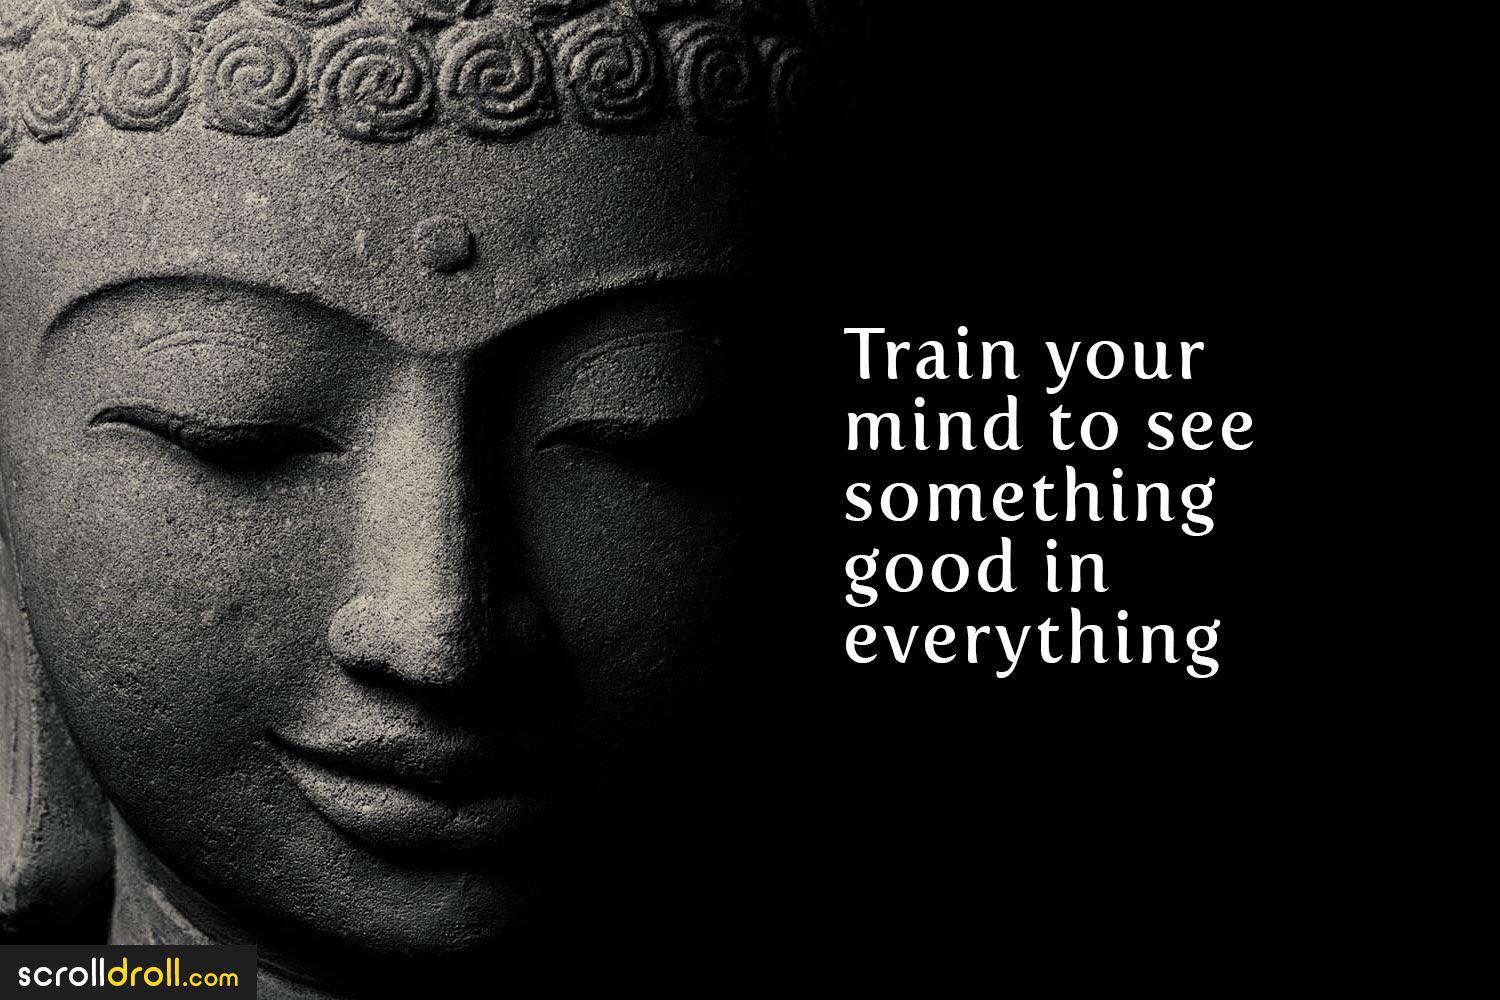 [Image] Train your mind to see something good in everything.